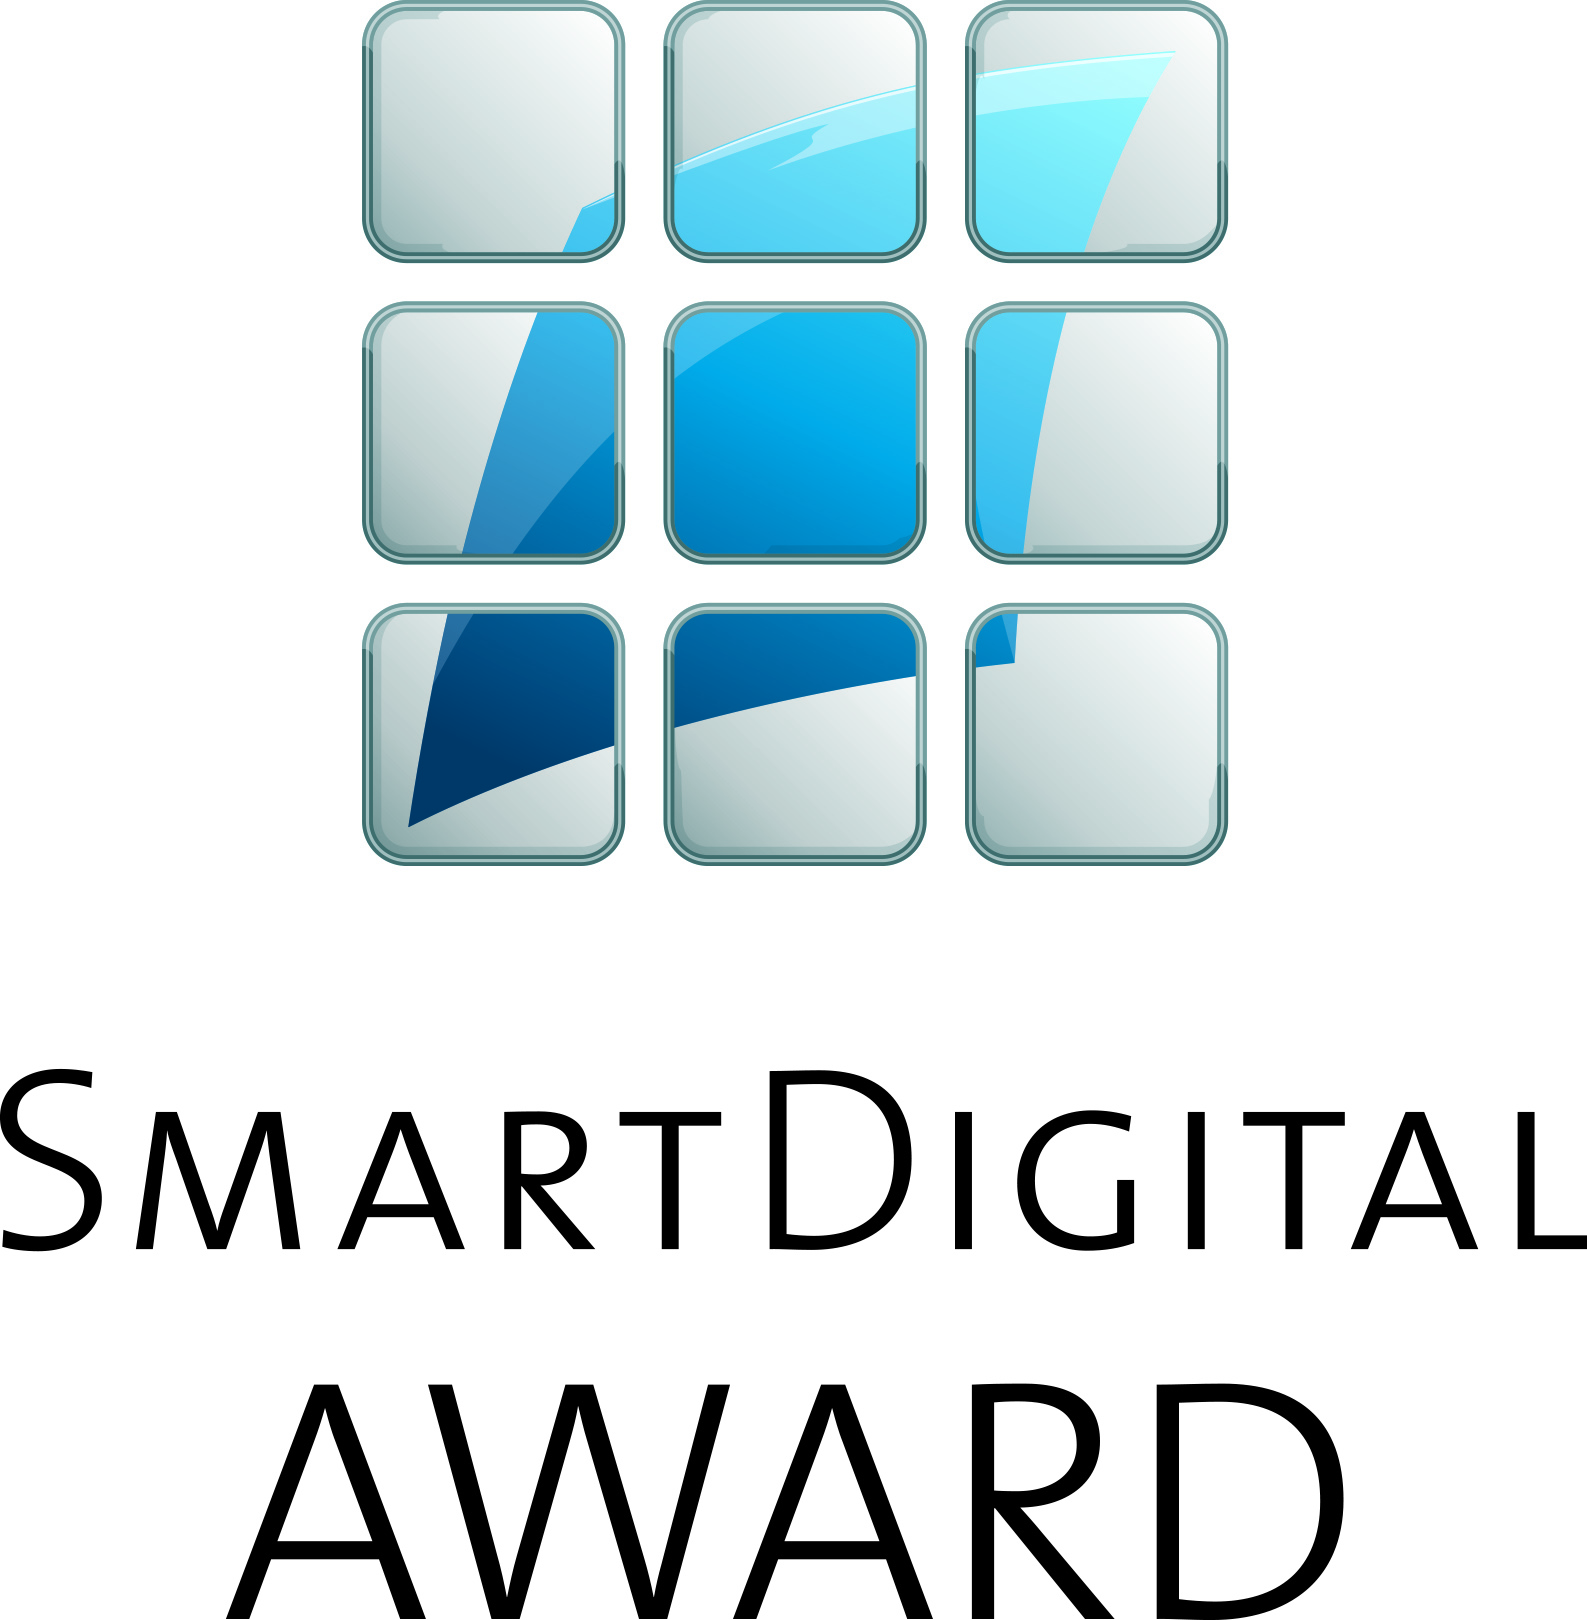 Smart Digital Award 2014